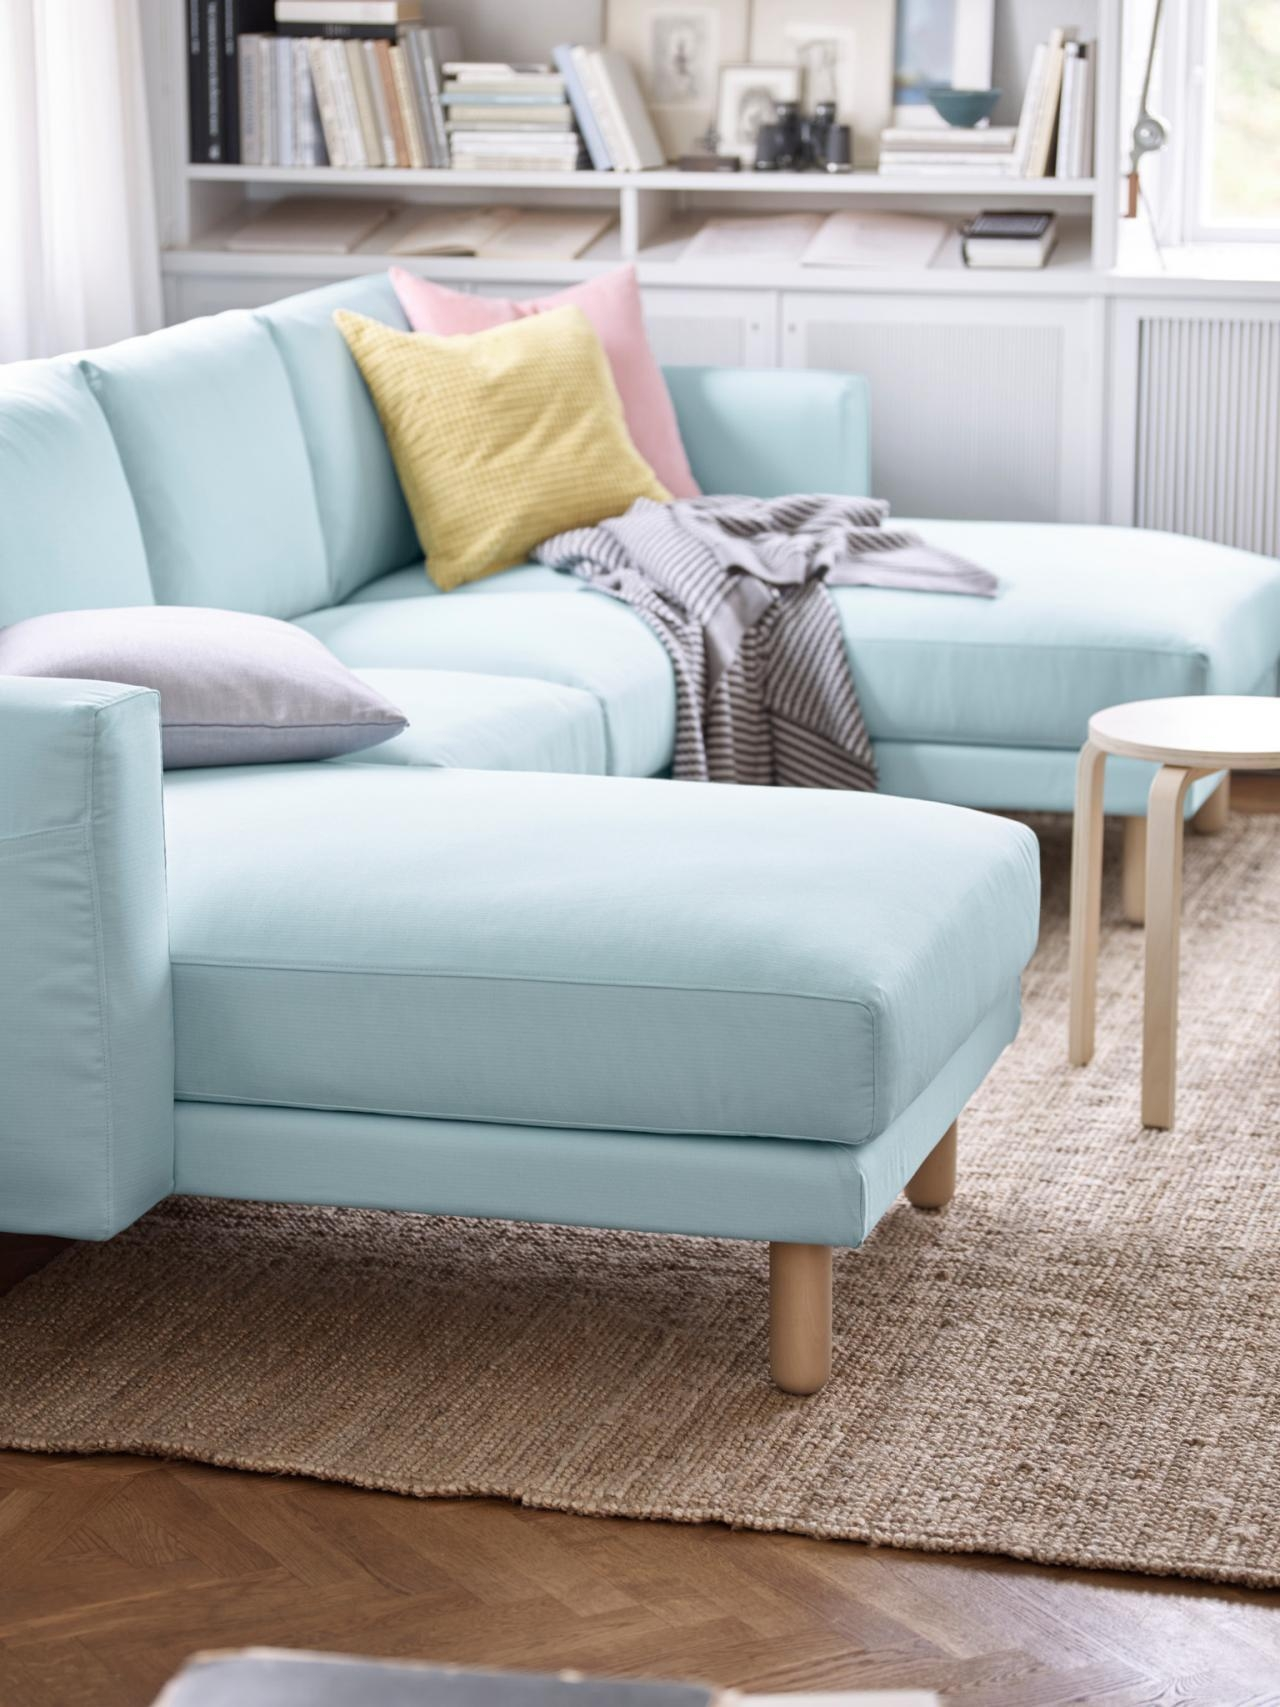 5 Apartment Sized Sofas That Are Lifesavers | Hgtv's Decorating Within Apartment Size Sofas And Sectionals (View 3 of 15)